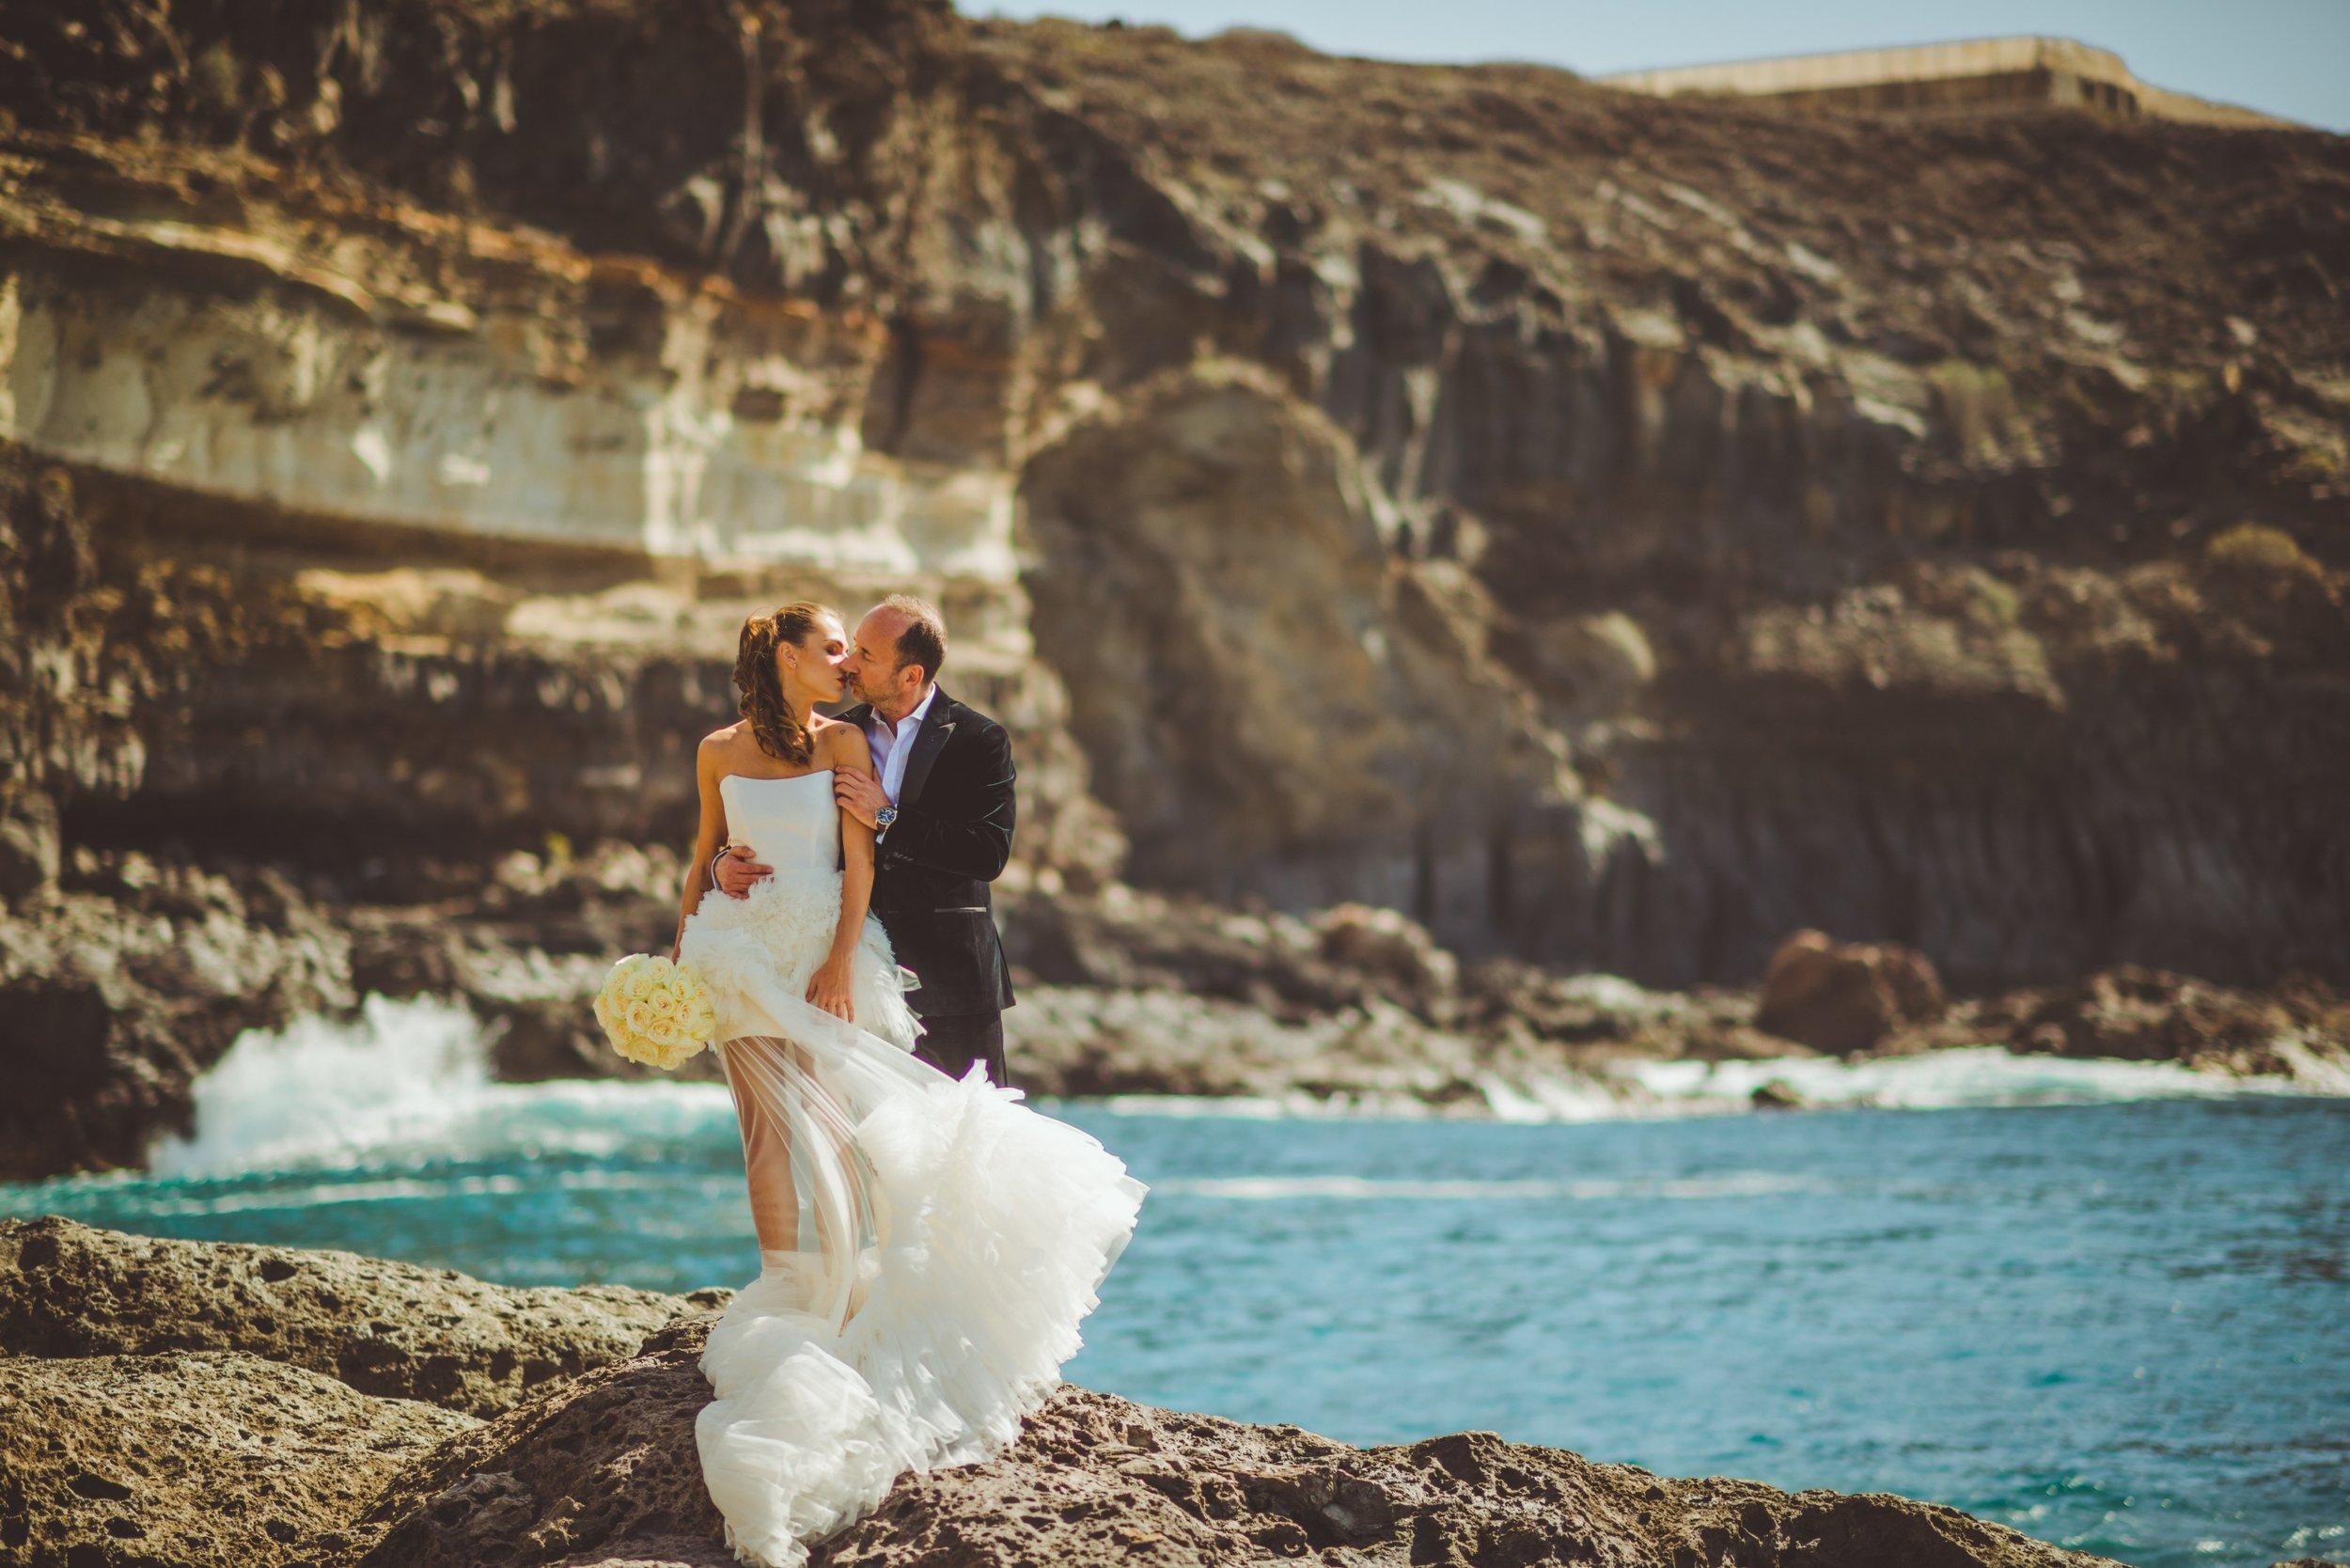 tenerifeweddings66.jpg